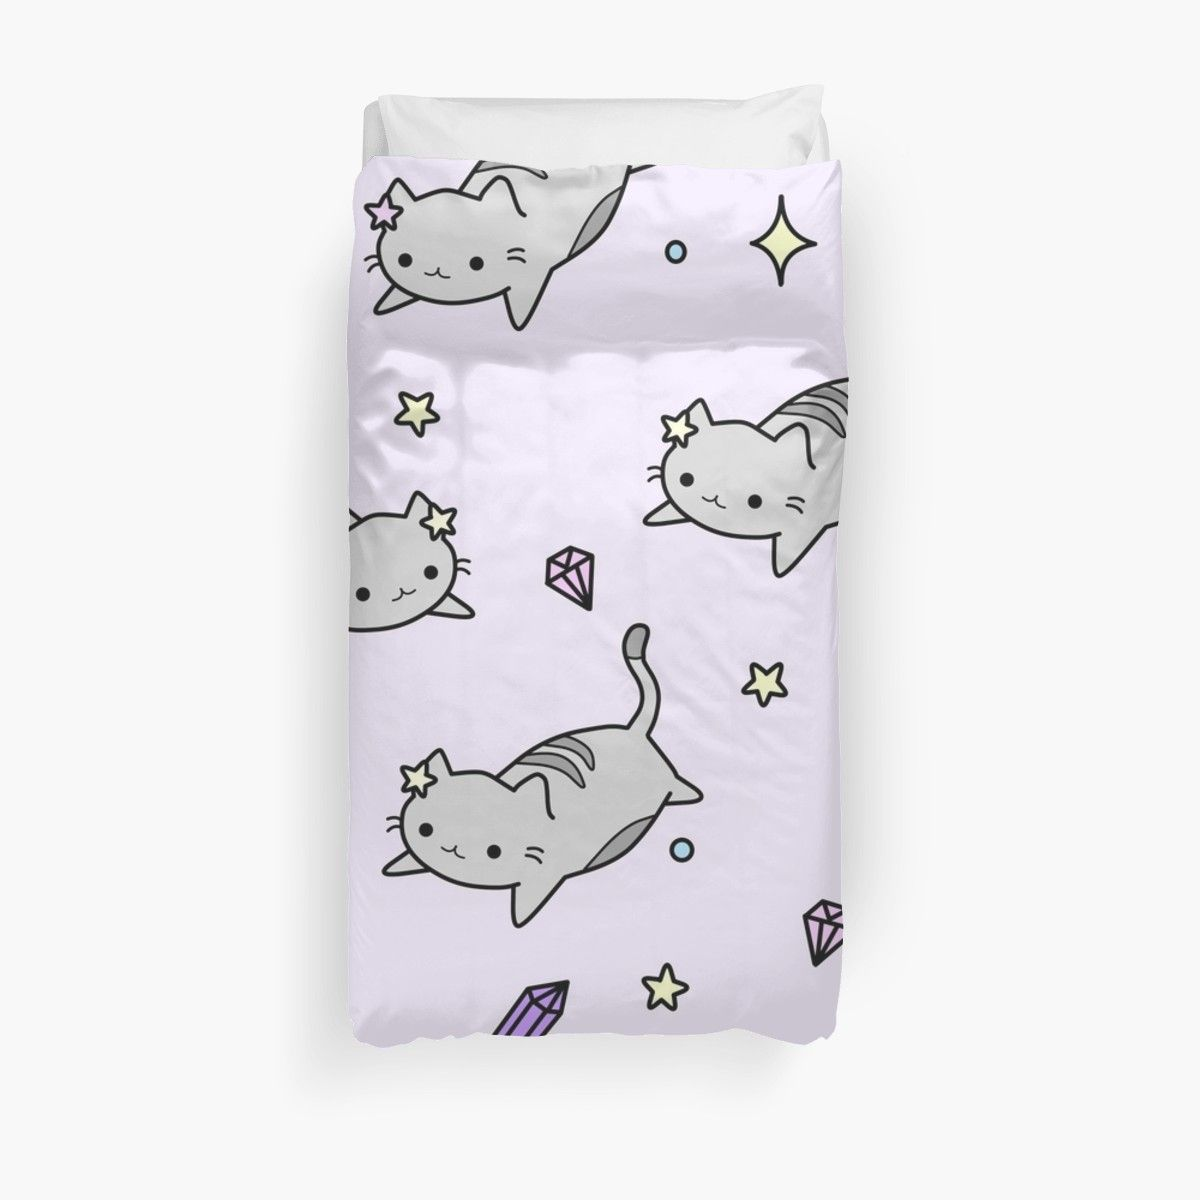 Cute Kawaii Cat Pattern Duvet Cover Duvet Cover Design